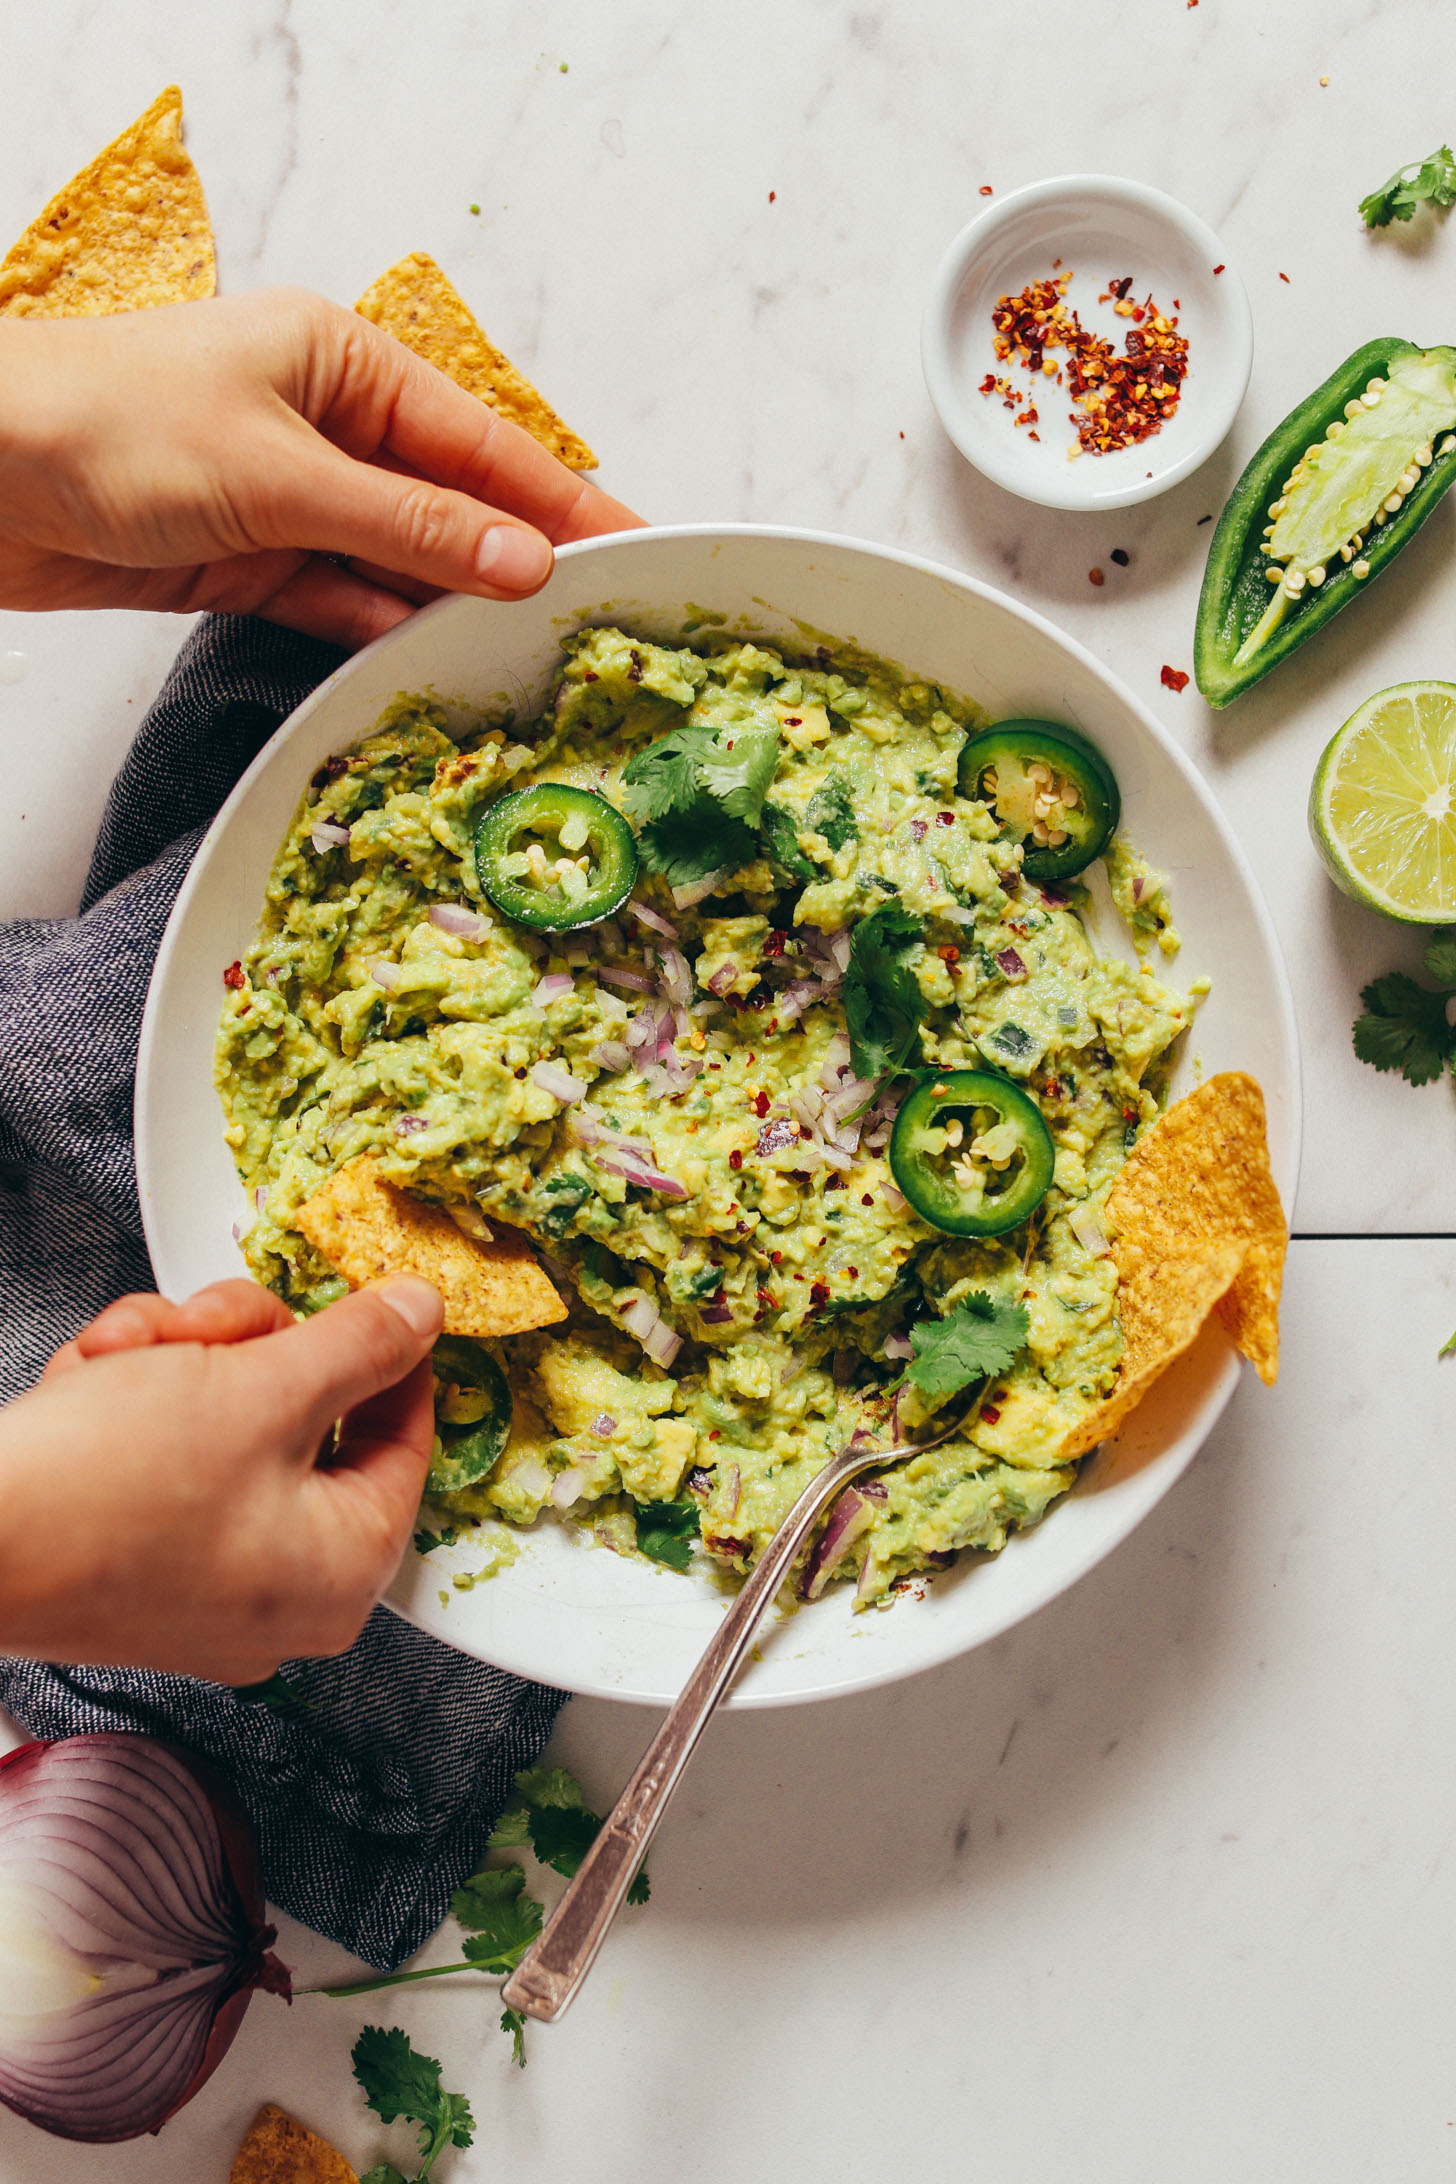 Overhead image of guacamole in a white bowl and a hand scooping some guacamole with a chip